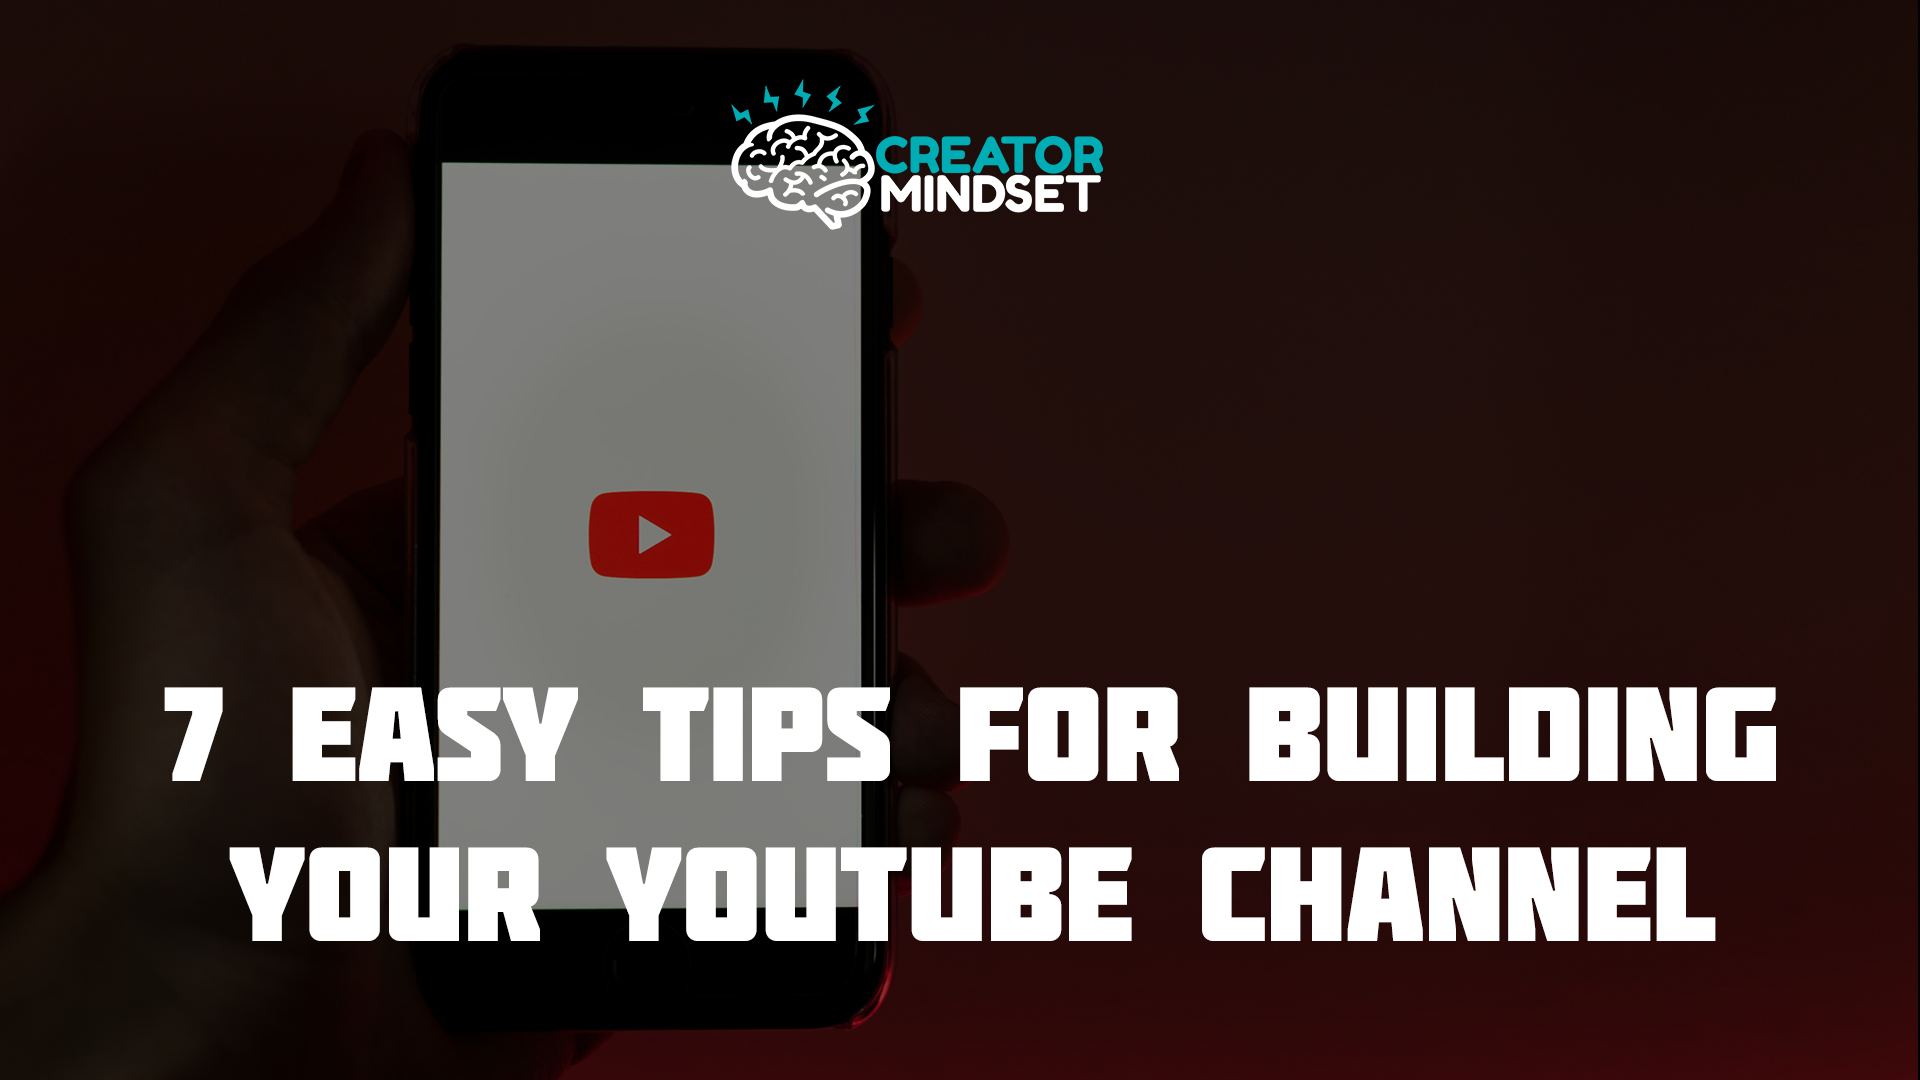 You have a video camera. You know how to upload, edit and share videos on social media platforms such as YouTube. But what should you do now to grow your channel? For most people, the answer is simple: keep shooting! With so many online creators making content that's both high-quality and easy to watch, it can be easy for beginners to feel discouraged or overwhelmed by all of the competition out there. That said, producing quality content is possible - but only if you're willing to put in some work up front when building your channel. Read on for some useful tips to get you started.